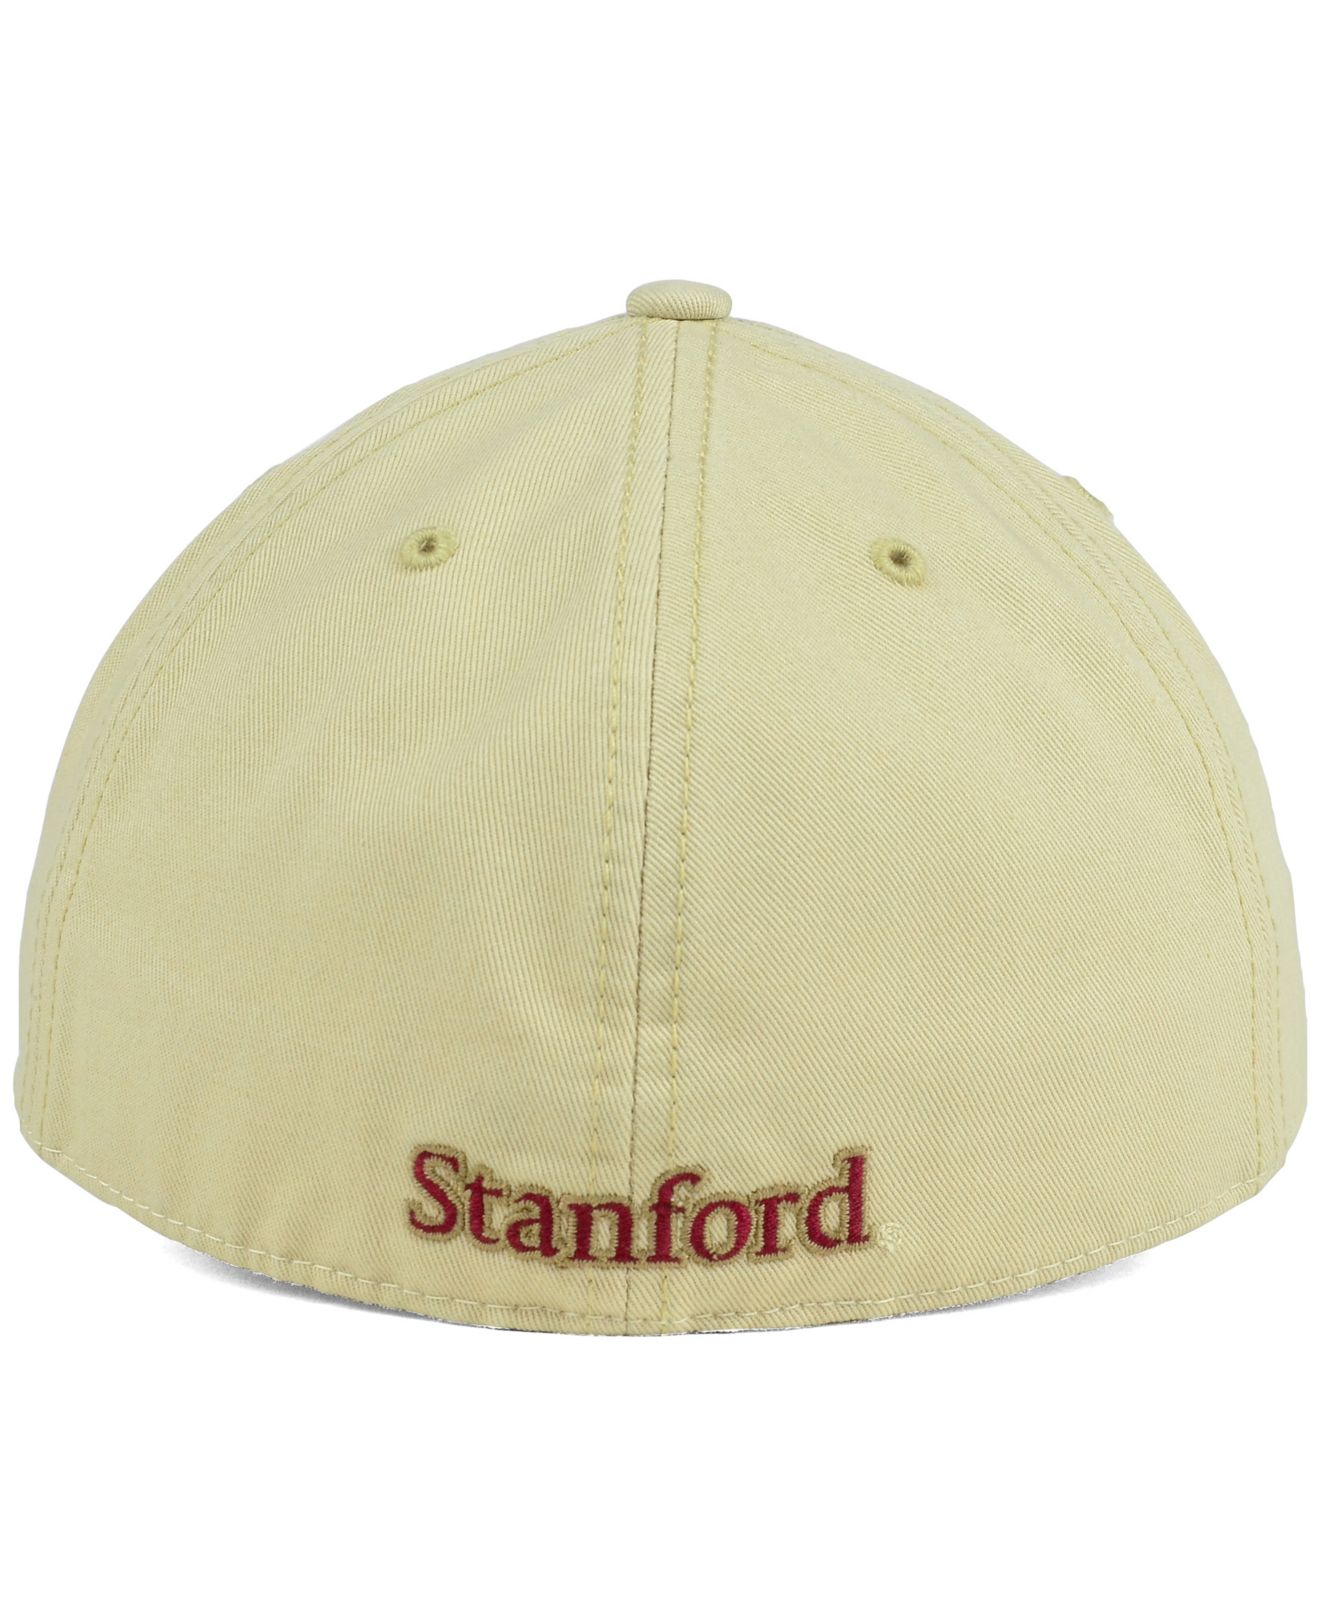 best service 1f675 8230e ... sweden lyst 47 brand stanford cardinal sahara lawrence cap in natural  for men bcbeb 678f2